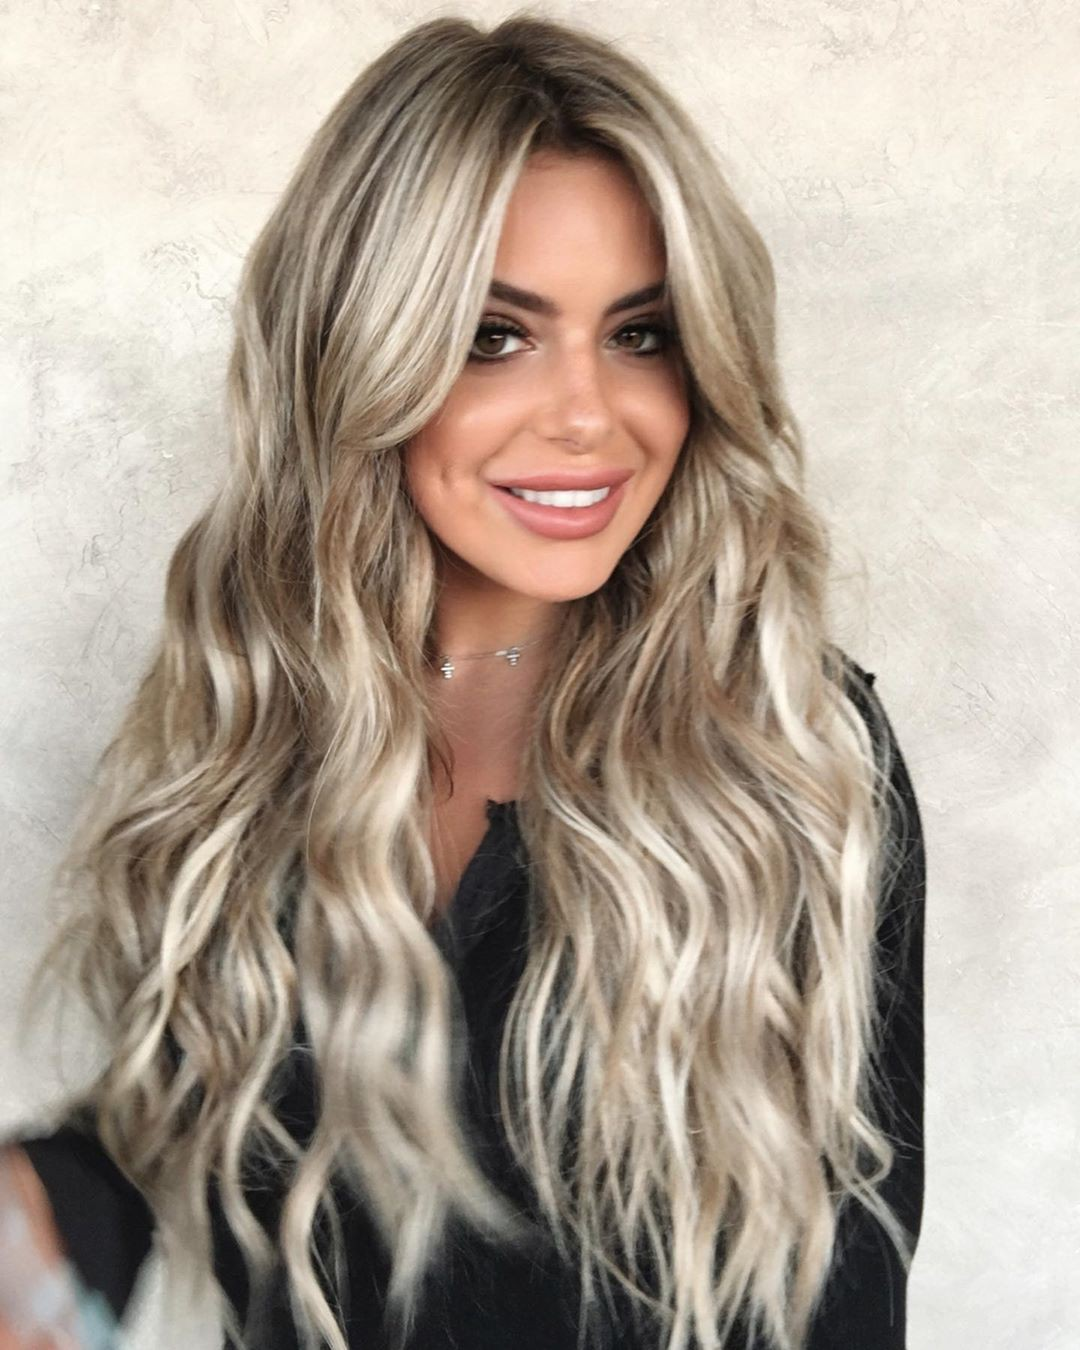 Brielle Biermann Instagram Pictures, Hair coloring, Feathered hair